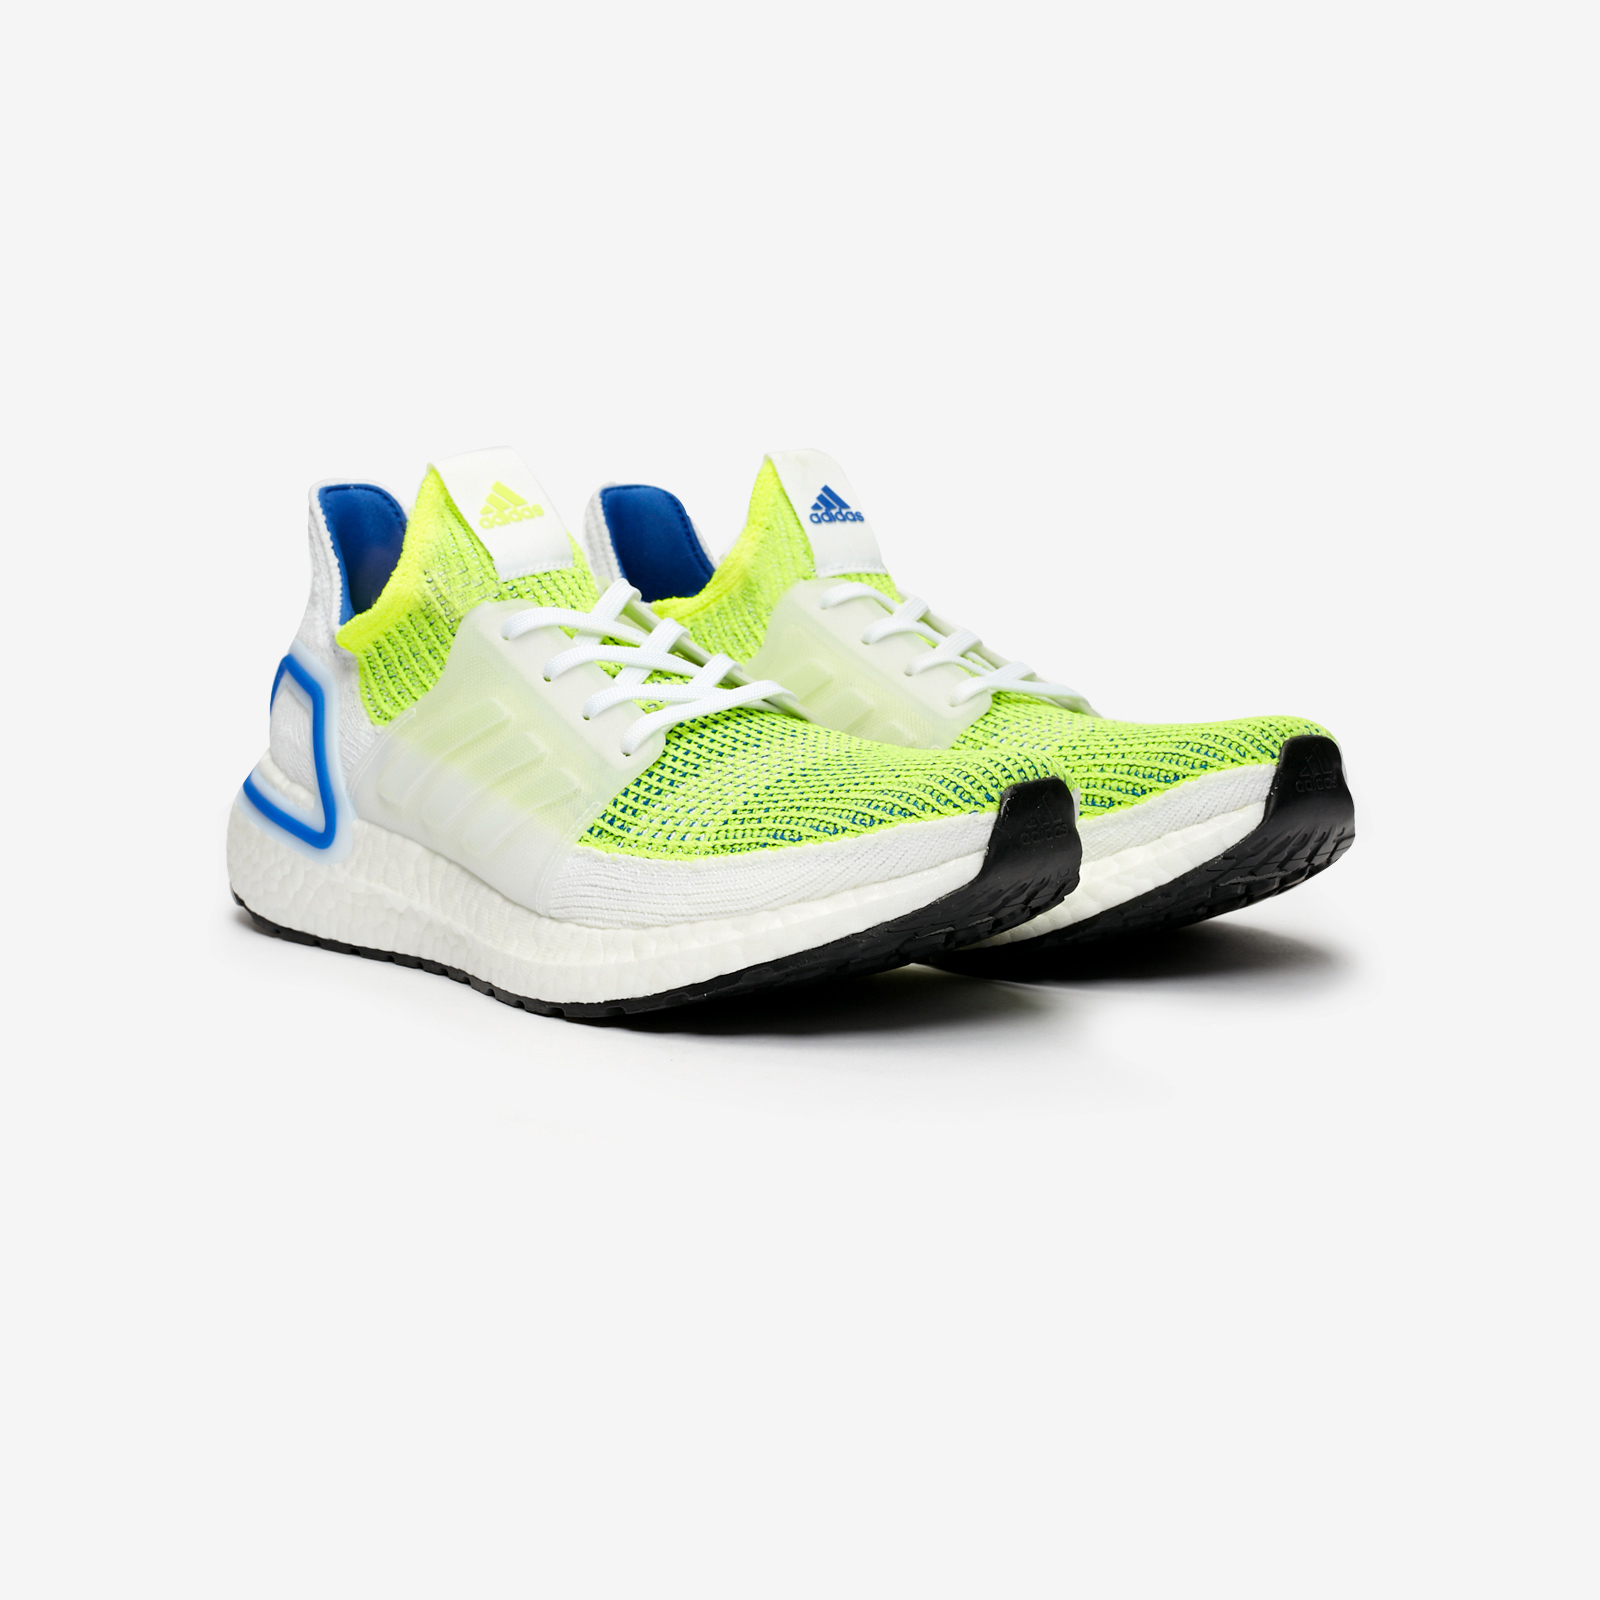 adidas UltraBOOST 19 'Special Delivery' x SNS - Fv6012 - SNS ...